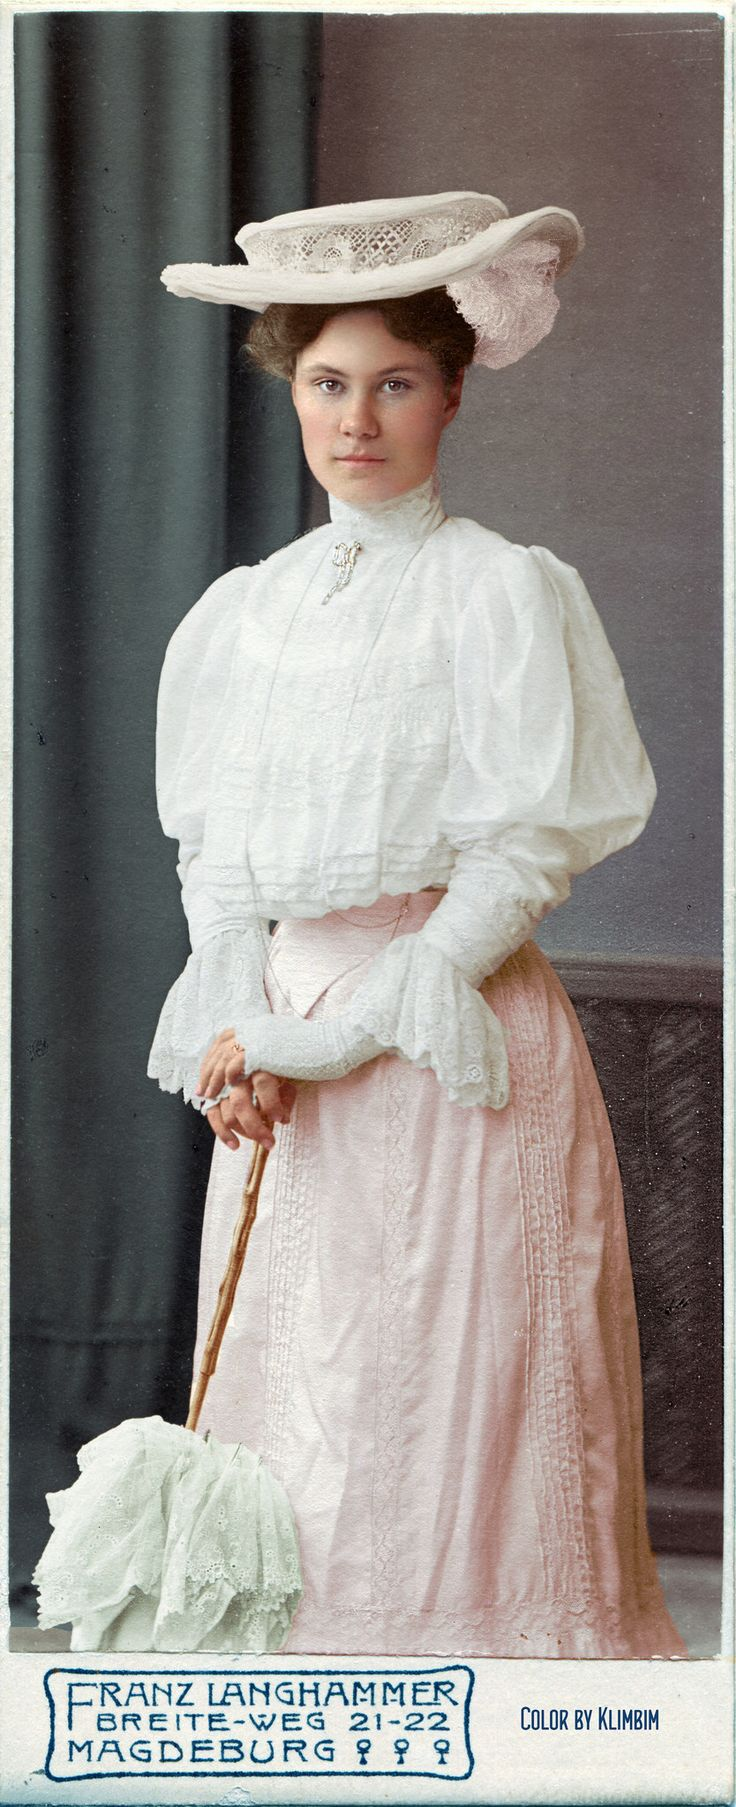 https://flic.kr/p/BAHf39 | A fashionable lady from Magdeburg, 1905